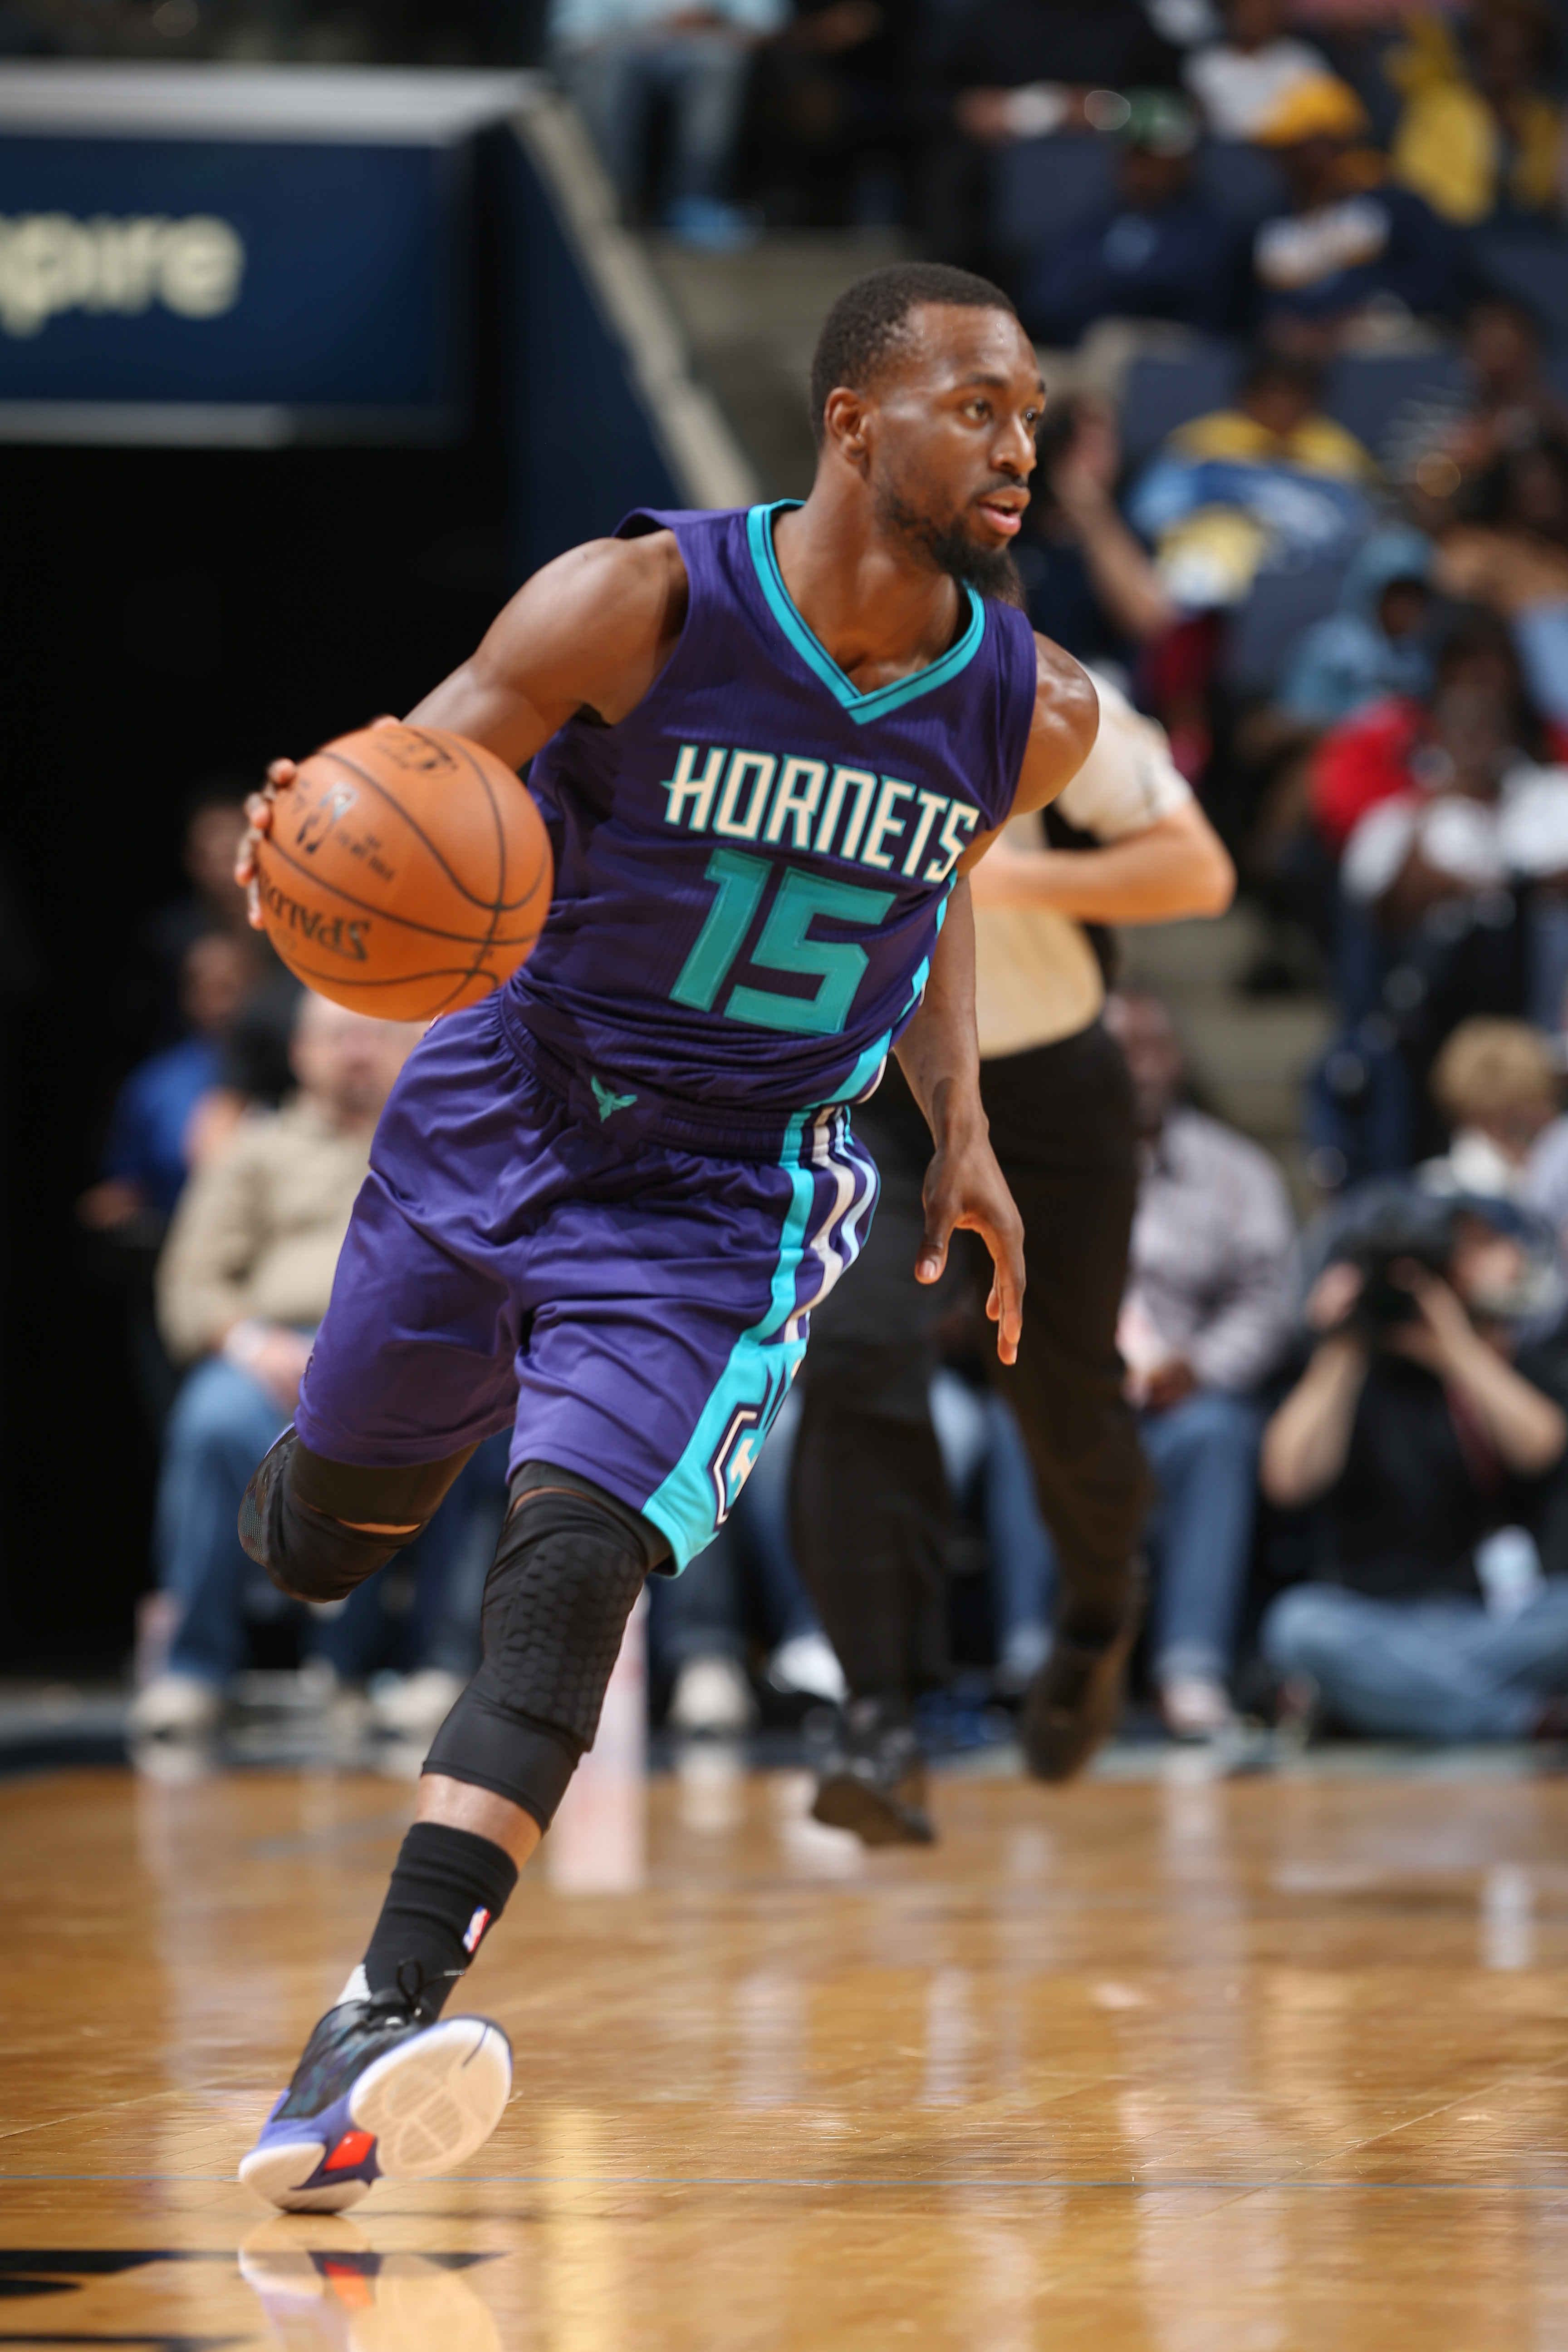 MEMPHIS, TN - DECEMBER 11: Kemba Walker #15 of the Charlotte Hornets handles the ball during the game against the Memphis Grizzlies on December 11, 2015 at FedExForum in Memphis, Tennessee. (Photo by Joe Murphy/NBAE via Getty Images)